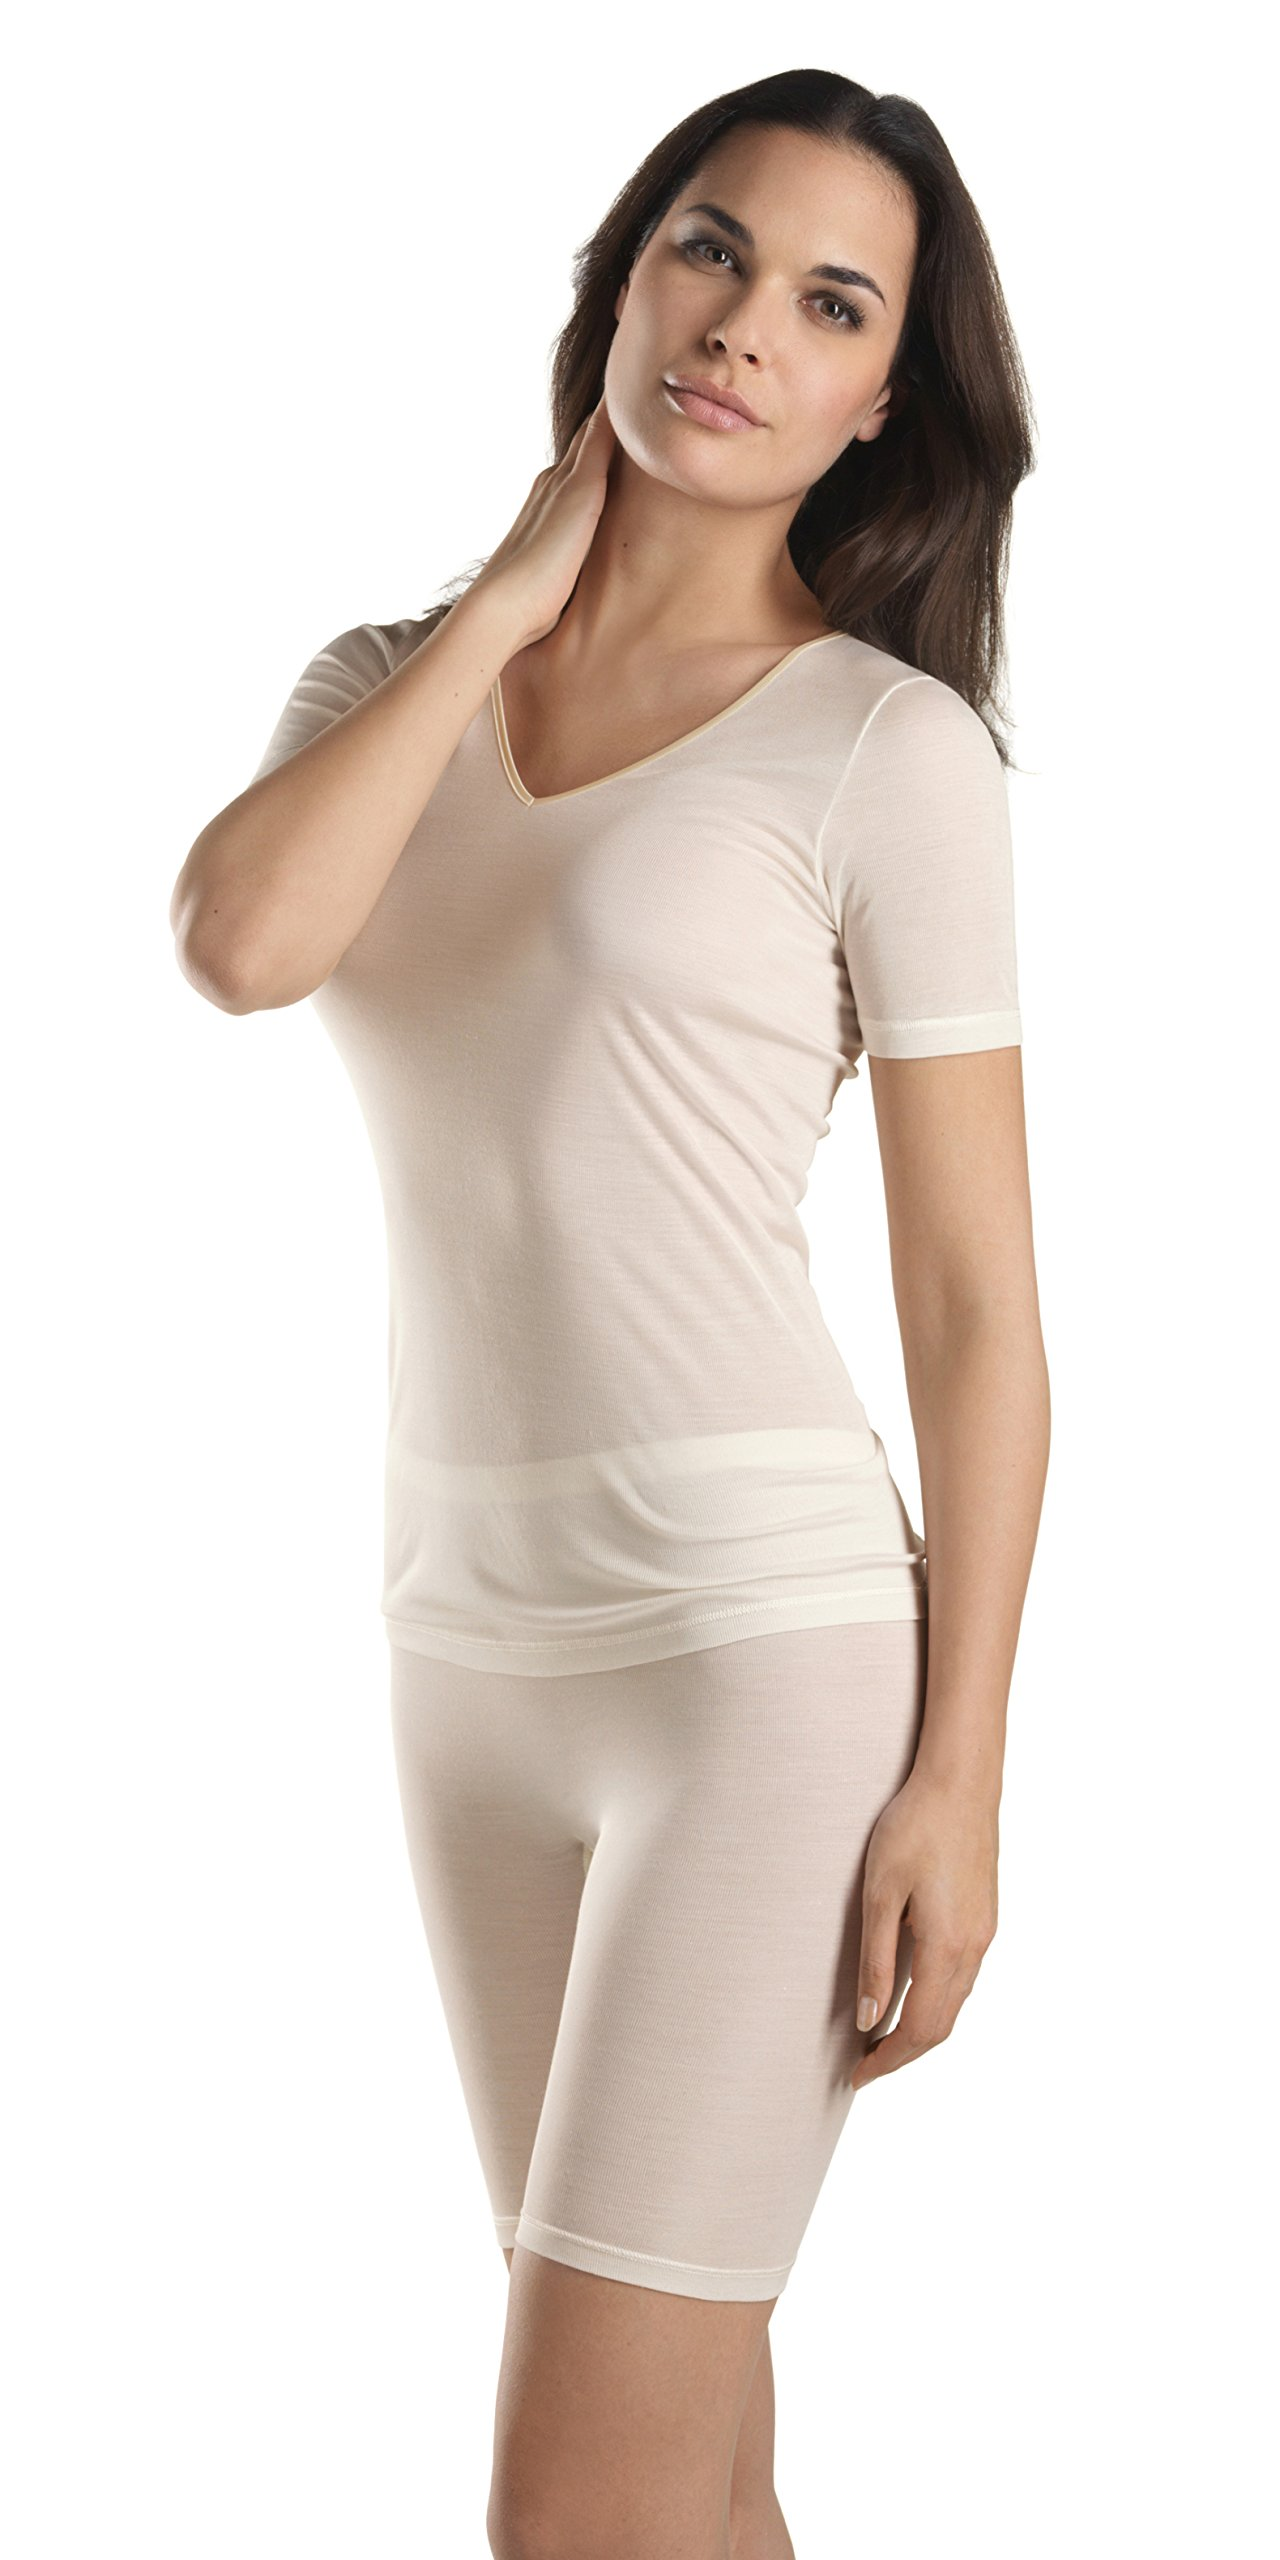 HANRO Women's Pure Silk Short Sleeve Shirt 71718, Pale Cream, Large